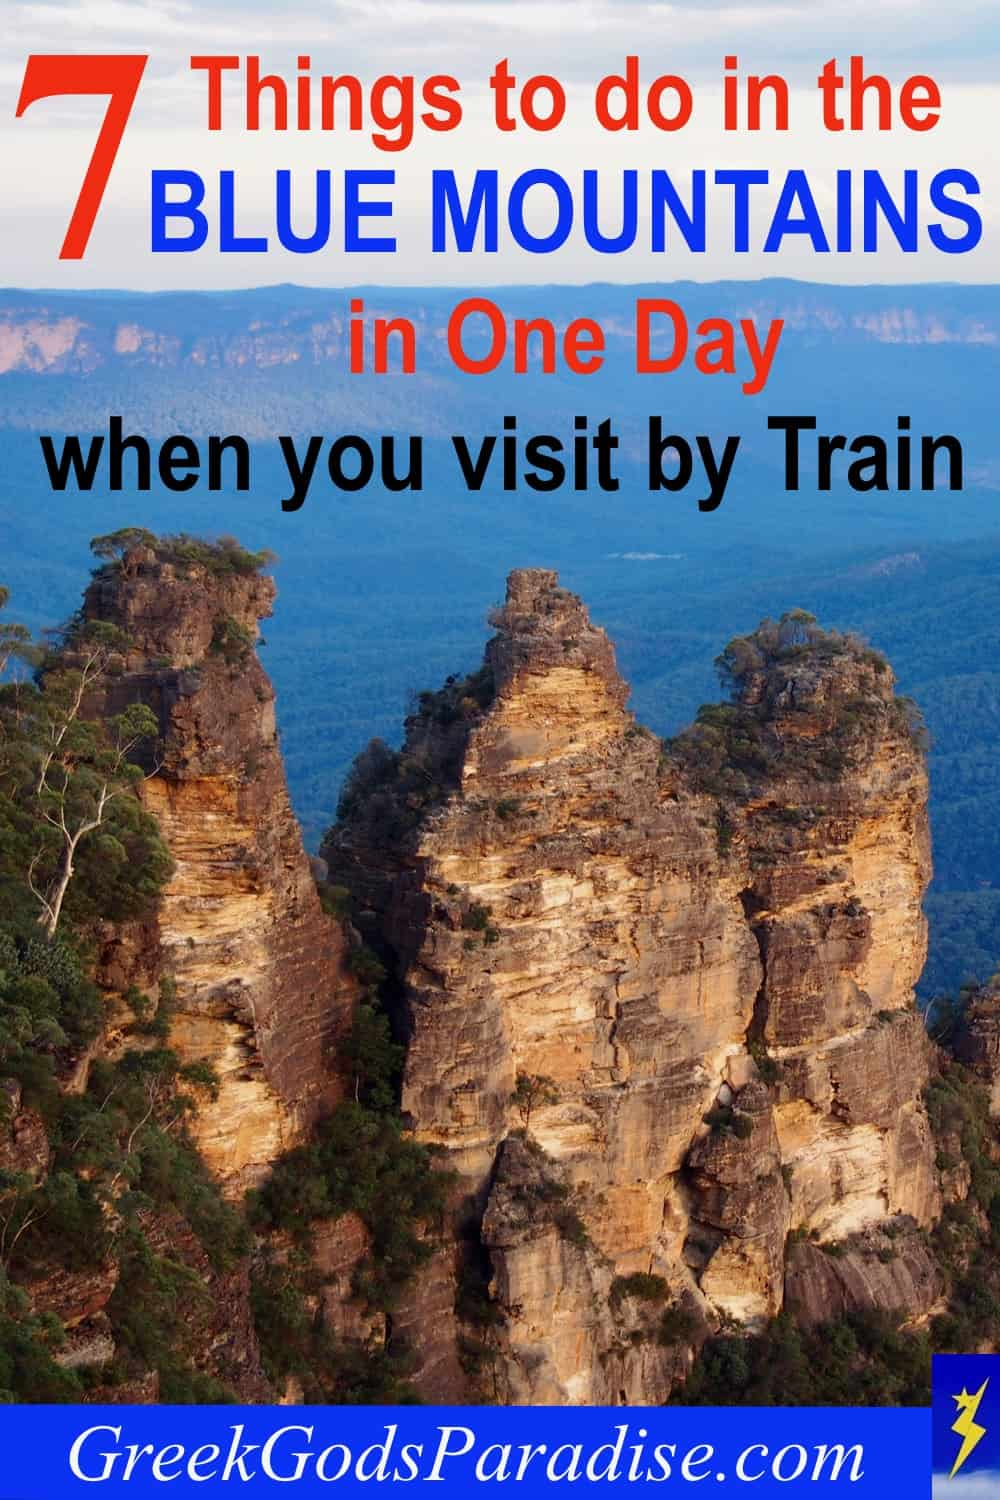 Things to do in the Blue Mountains